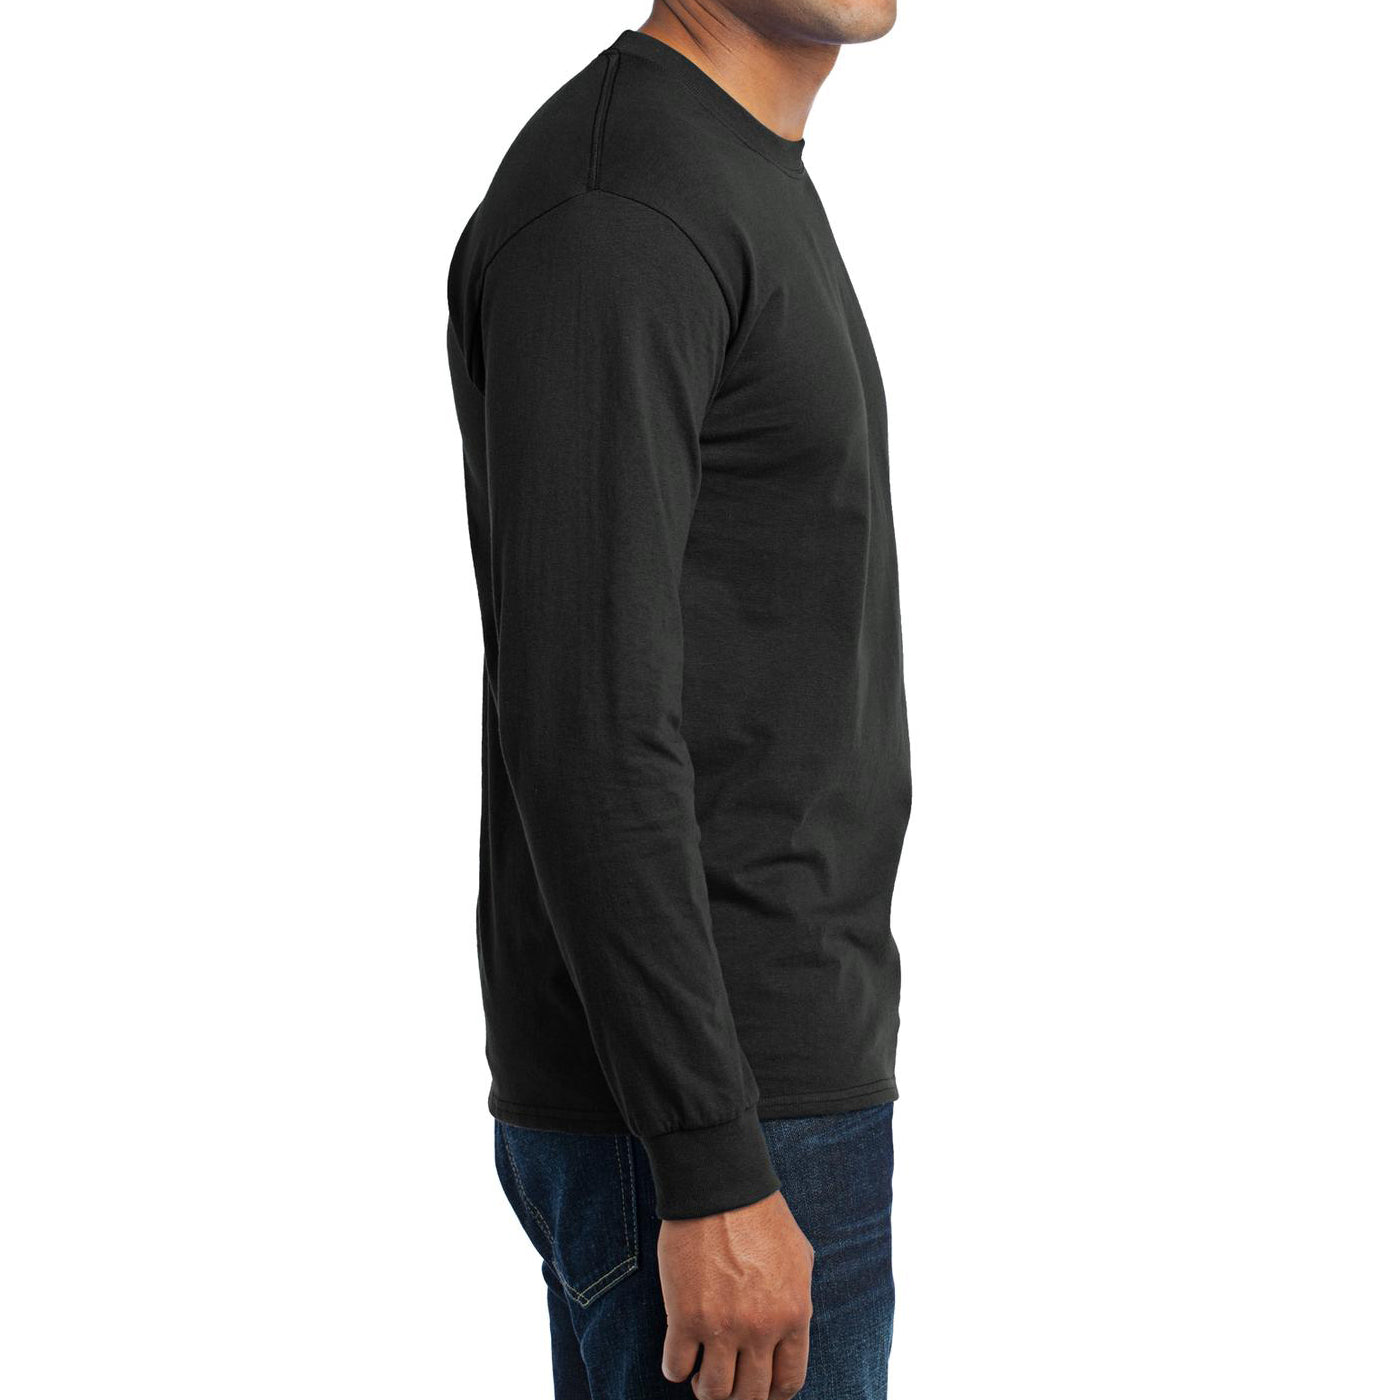 Men's Long Sleeve Core Blend Tee - Jet Black – Side